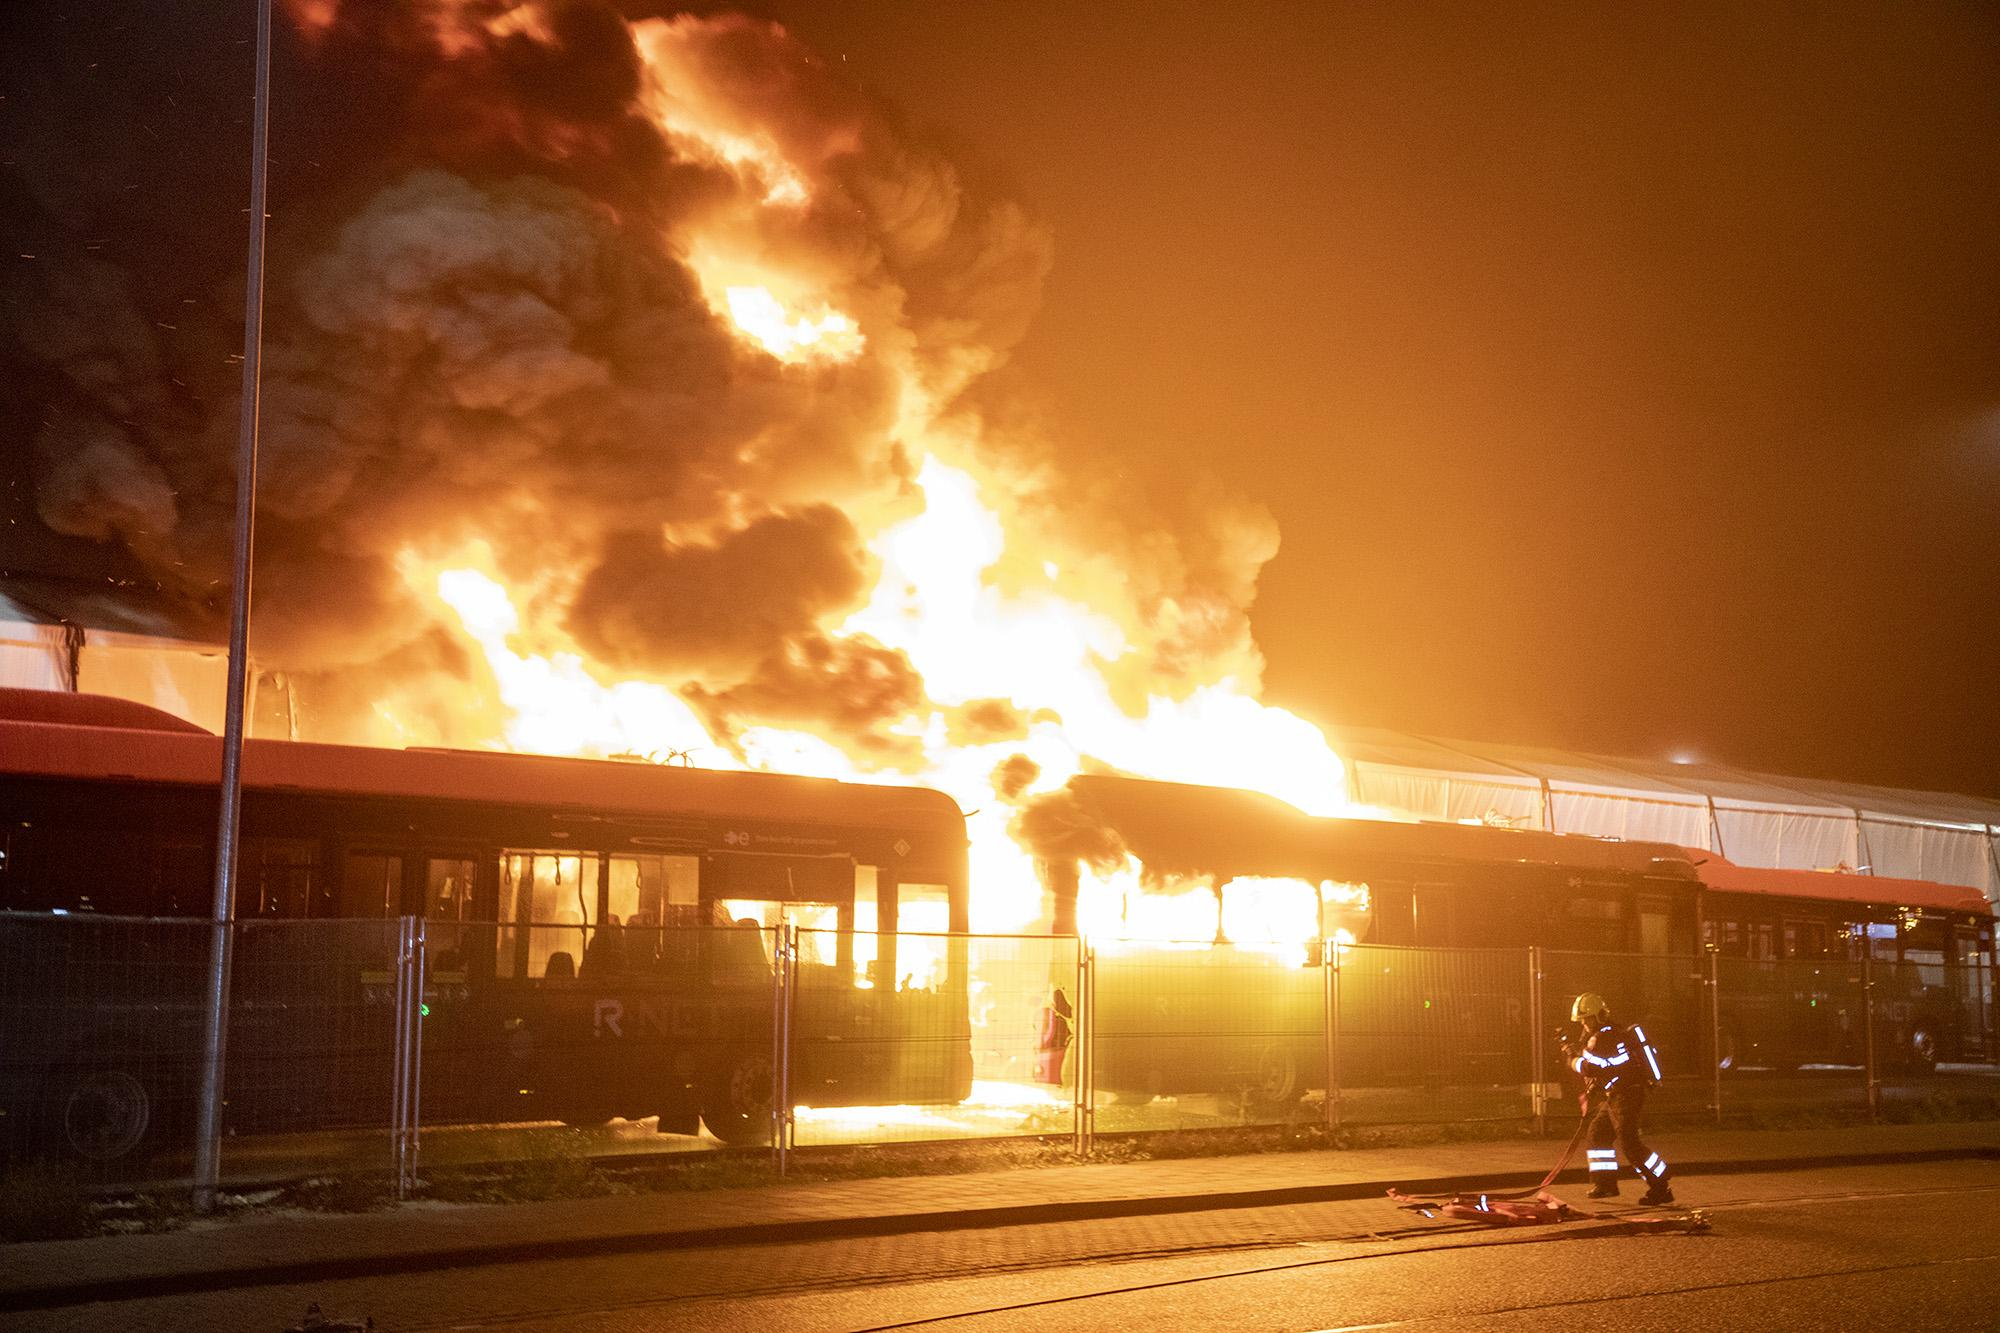 Grote brand in busremise Connexxion Haarlem [video]